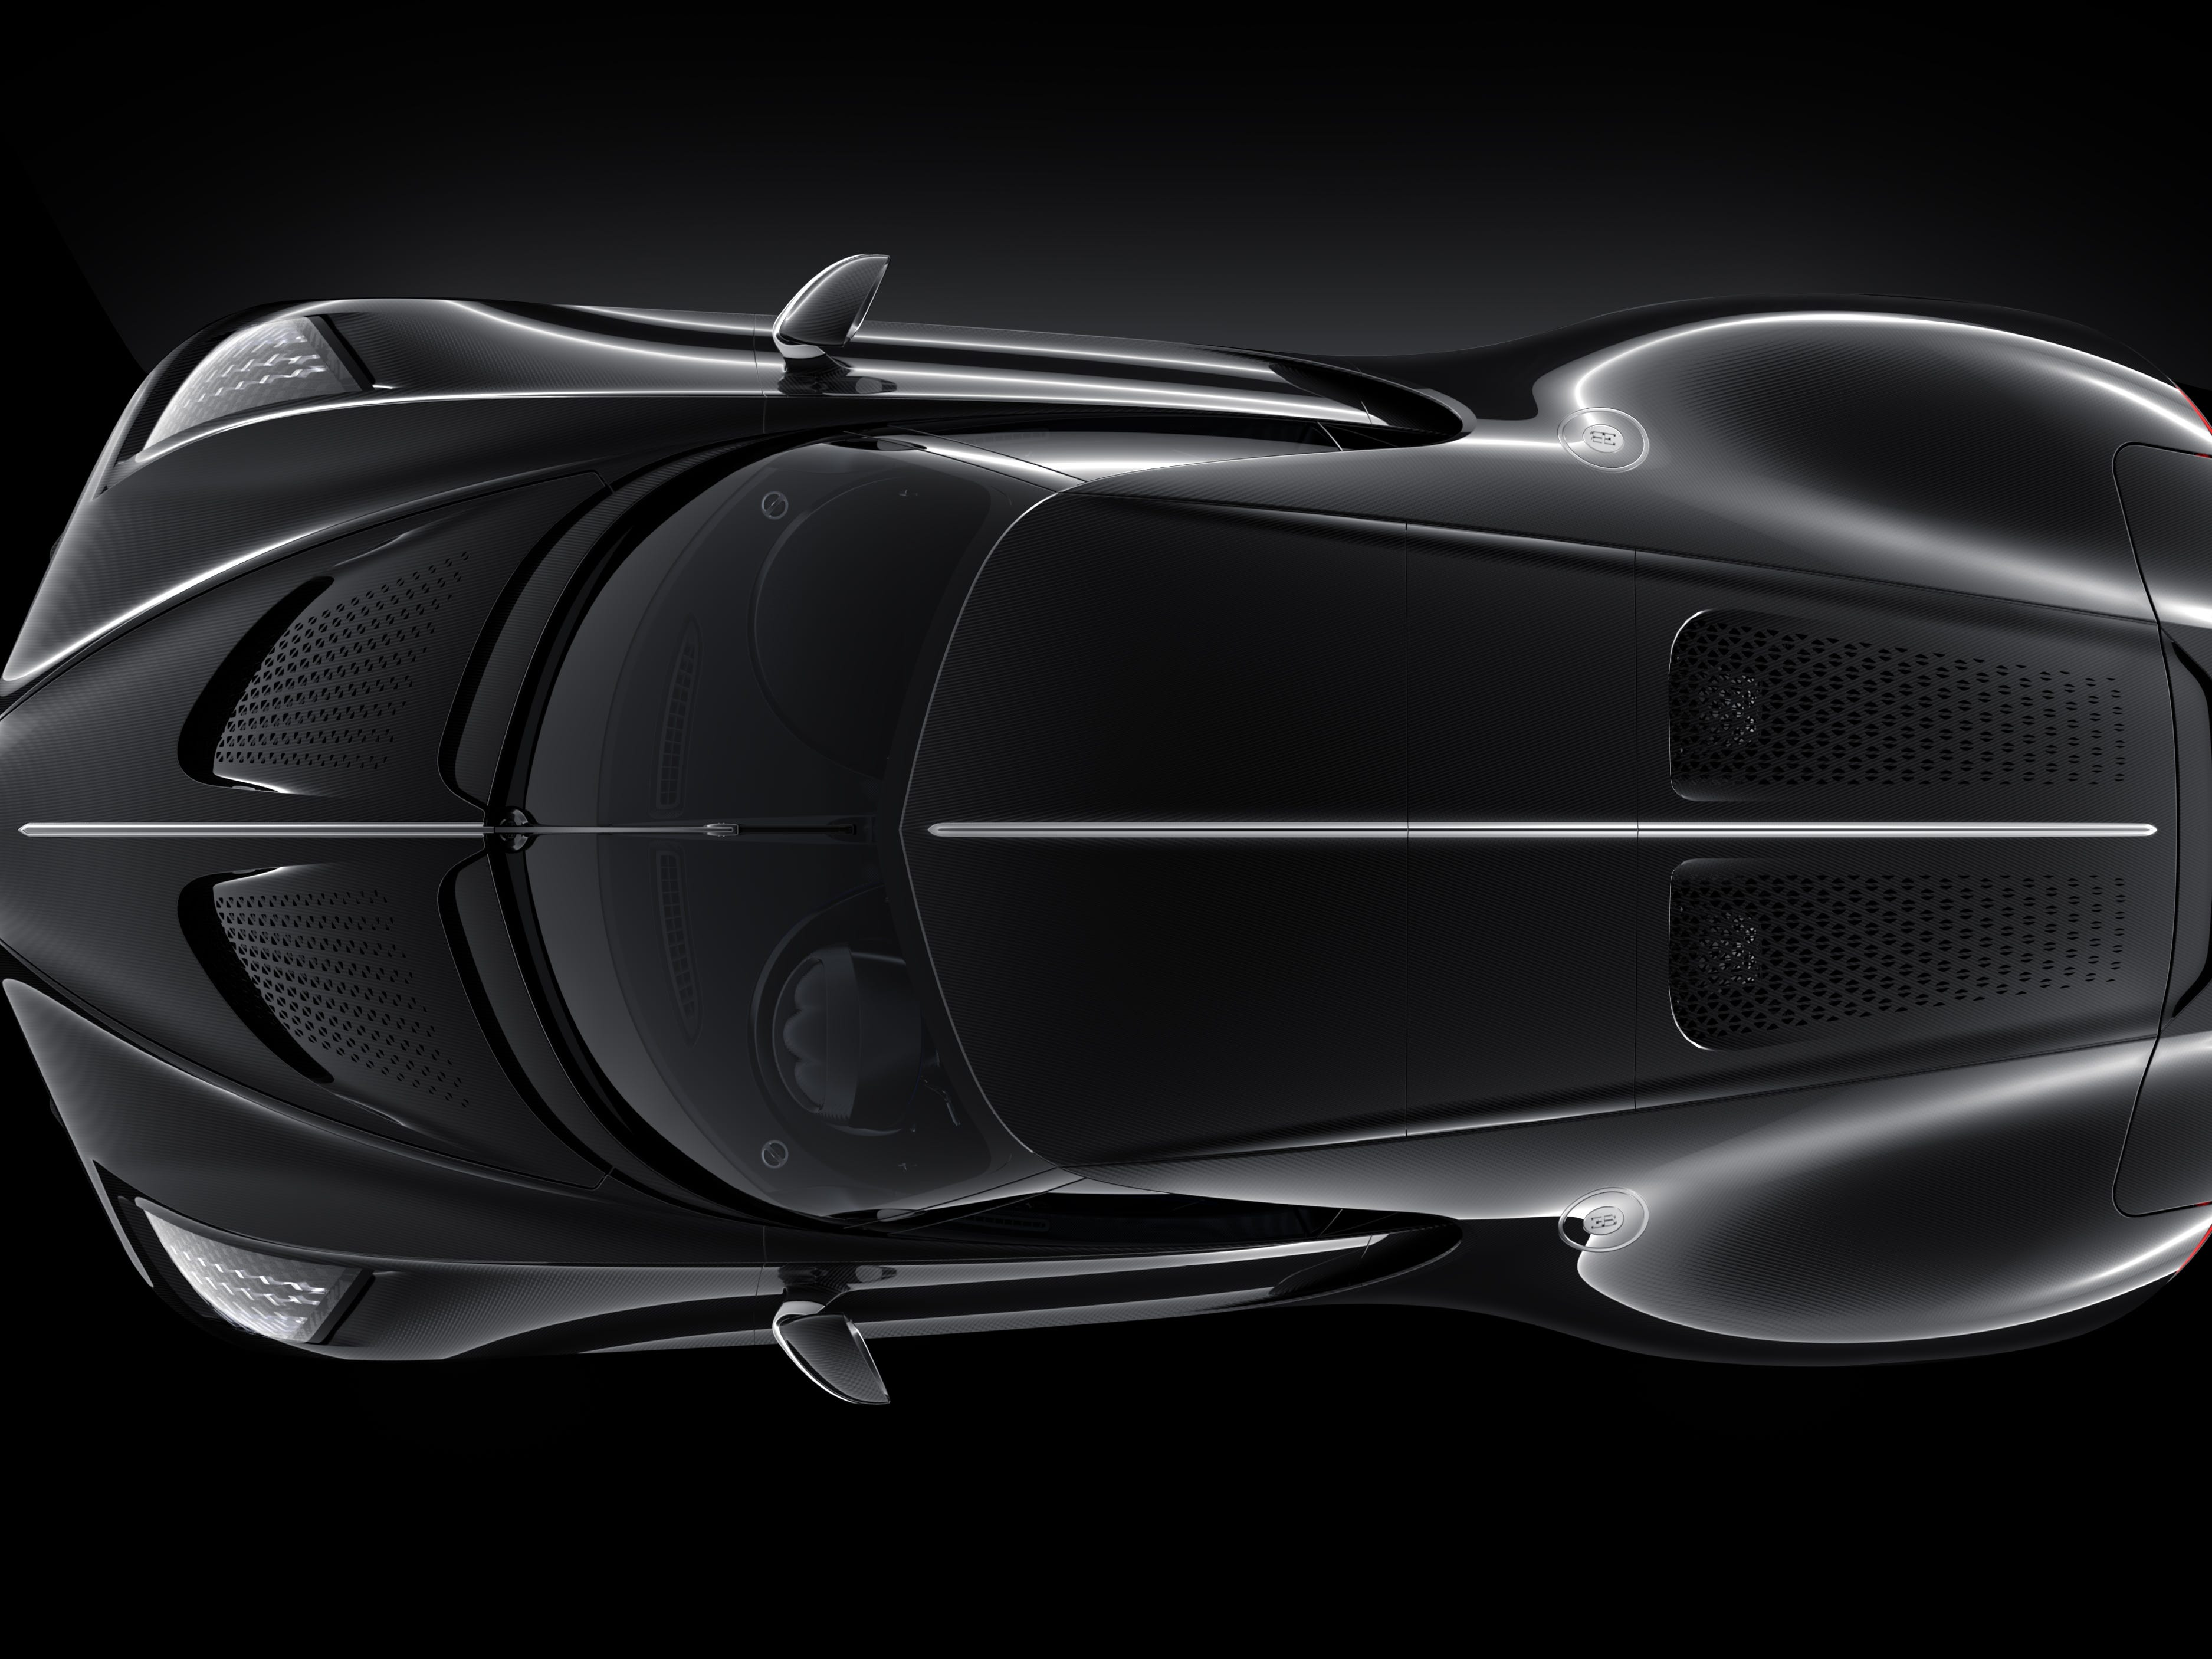 The car pays homage to the Bugatti Type 57 SC Atlantic of the 1930s. Only four of those were made.